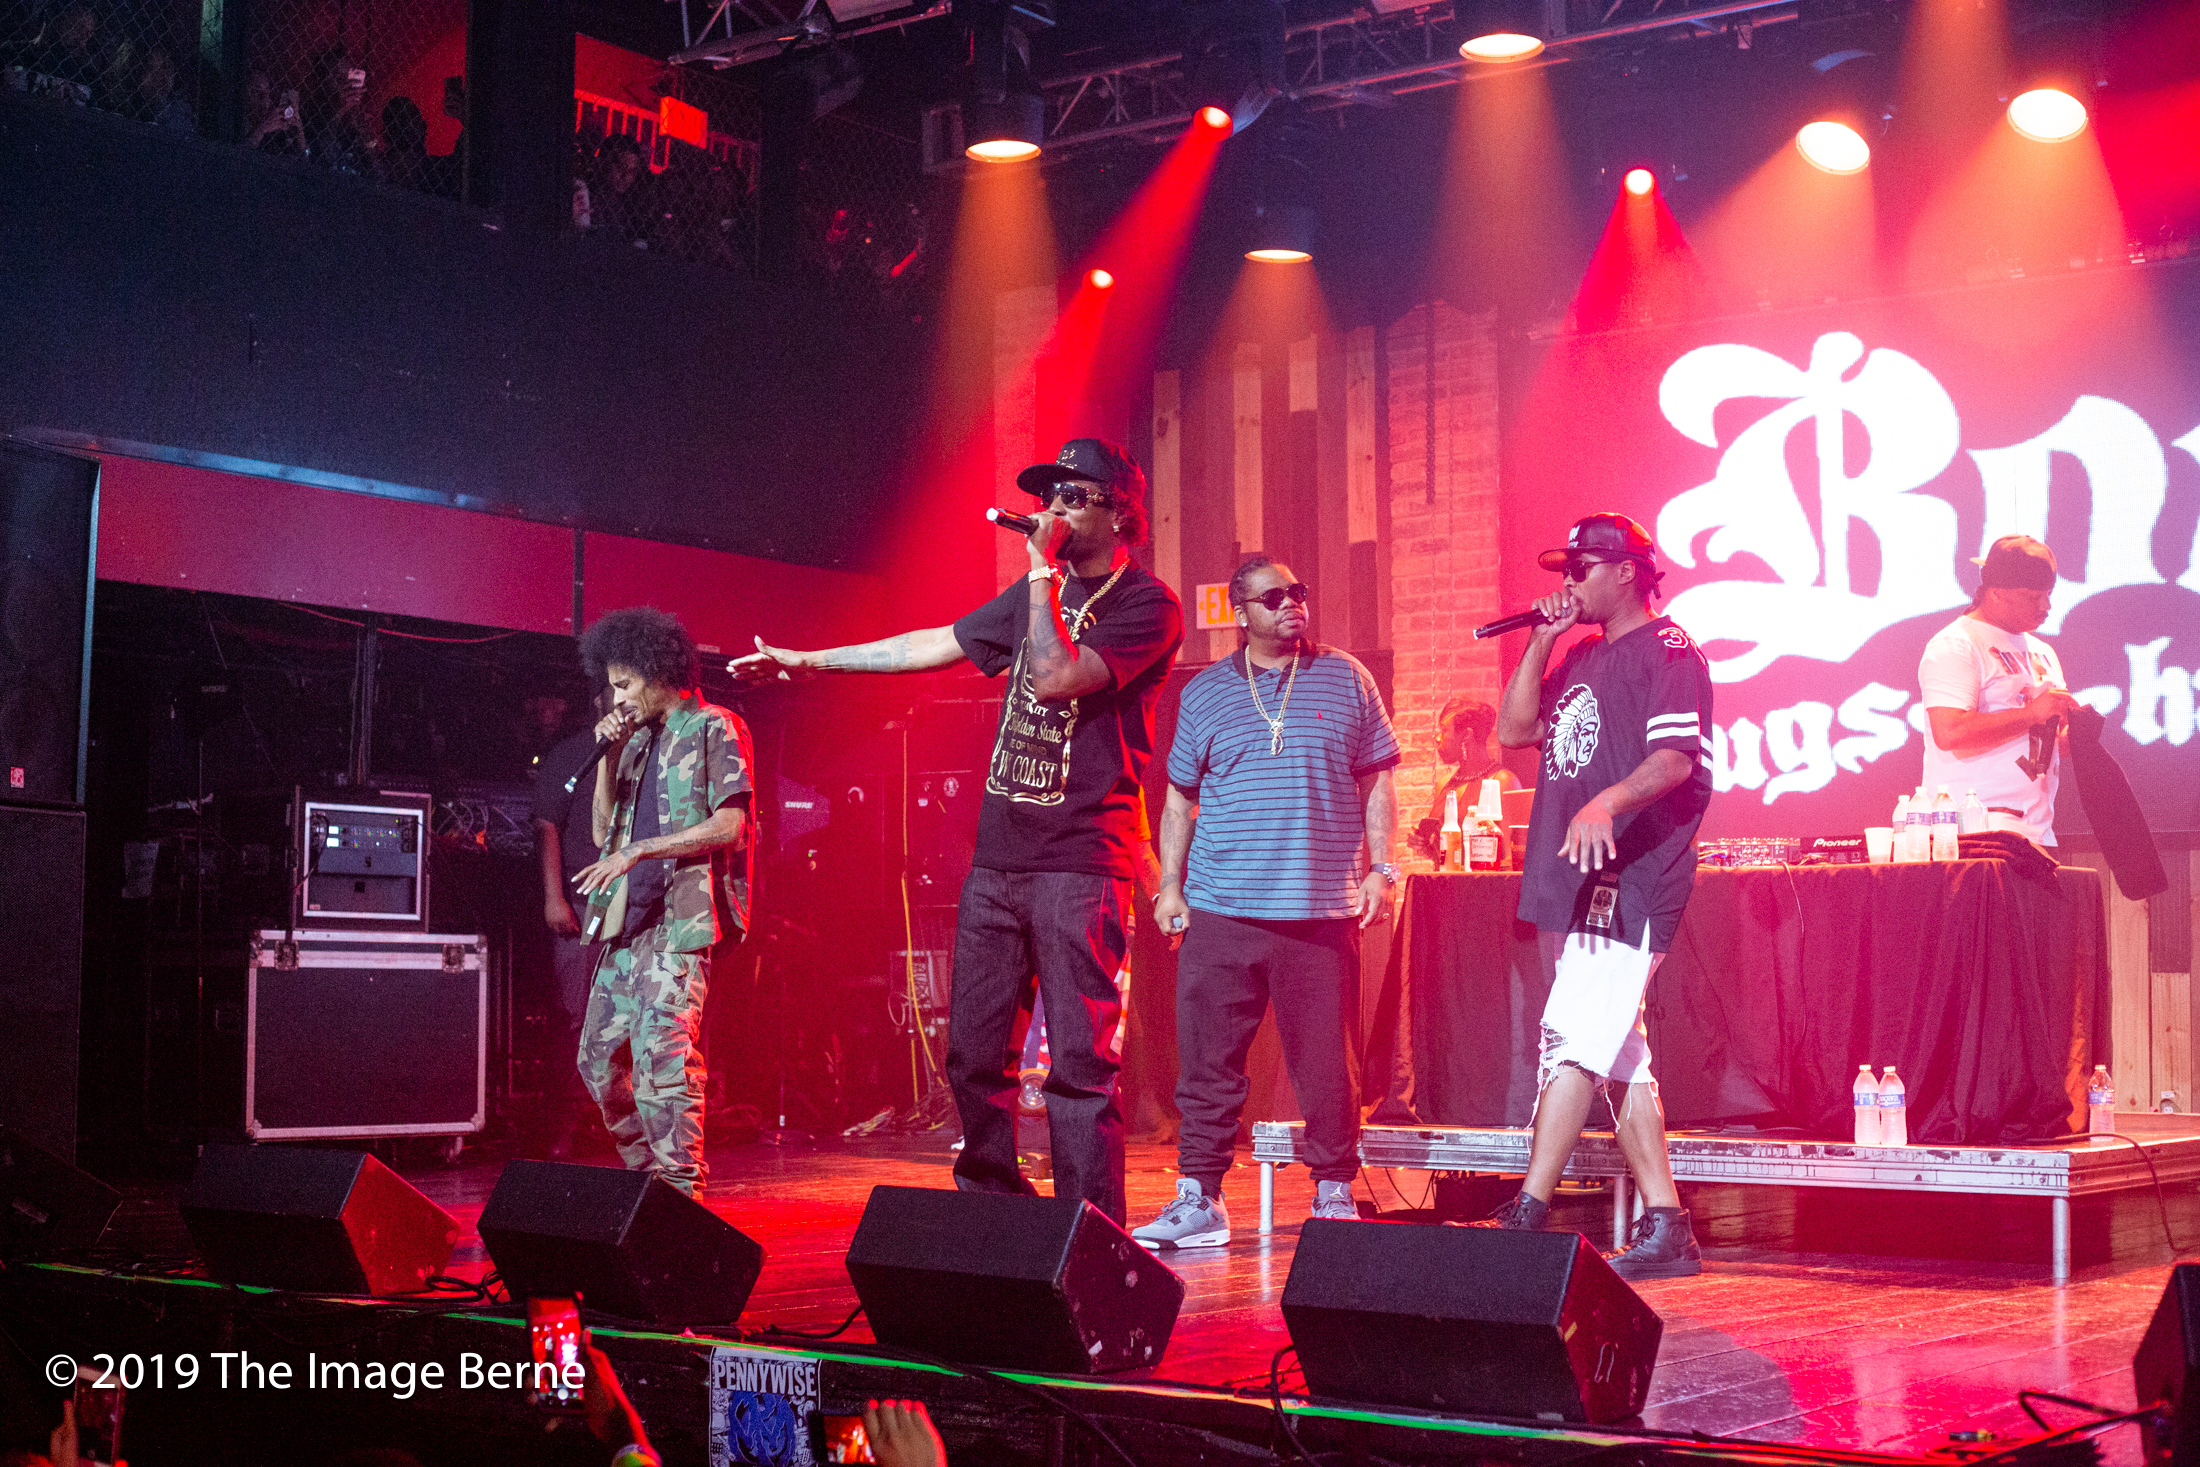 Krayzie Bone, Wish Bone, Flesh-N-Bone, Layzie Bone, and Bizzy Bone-053.jpg